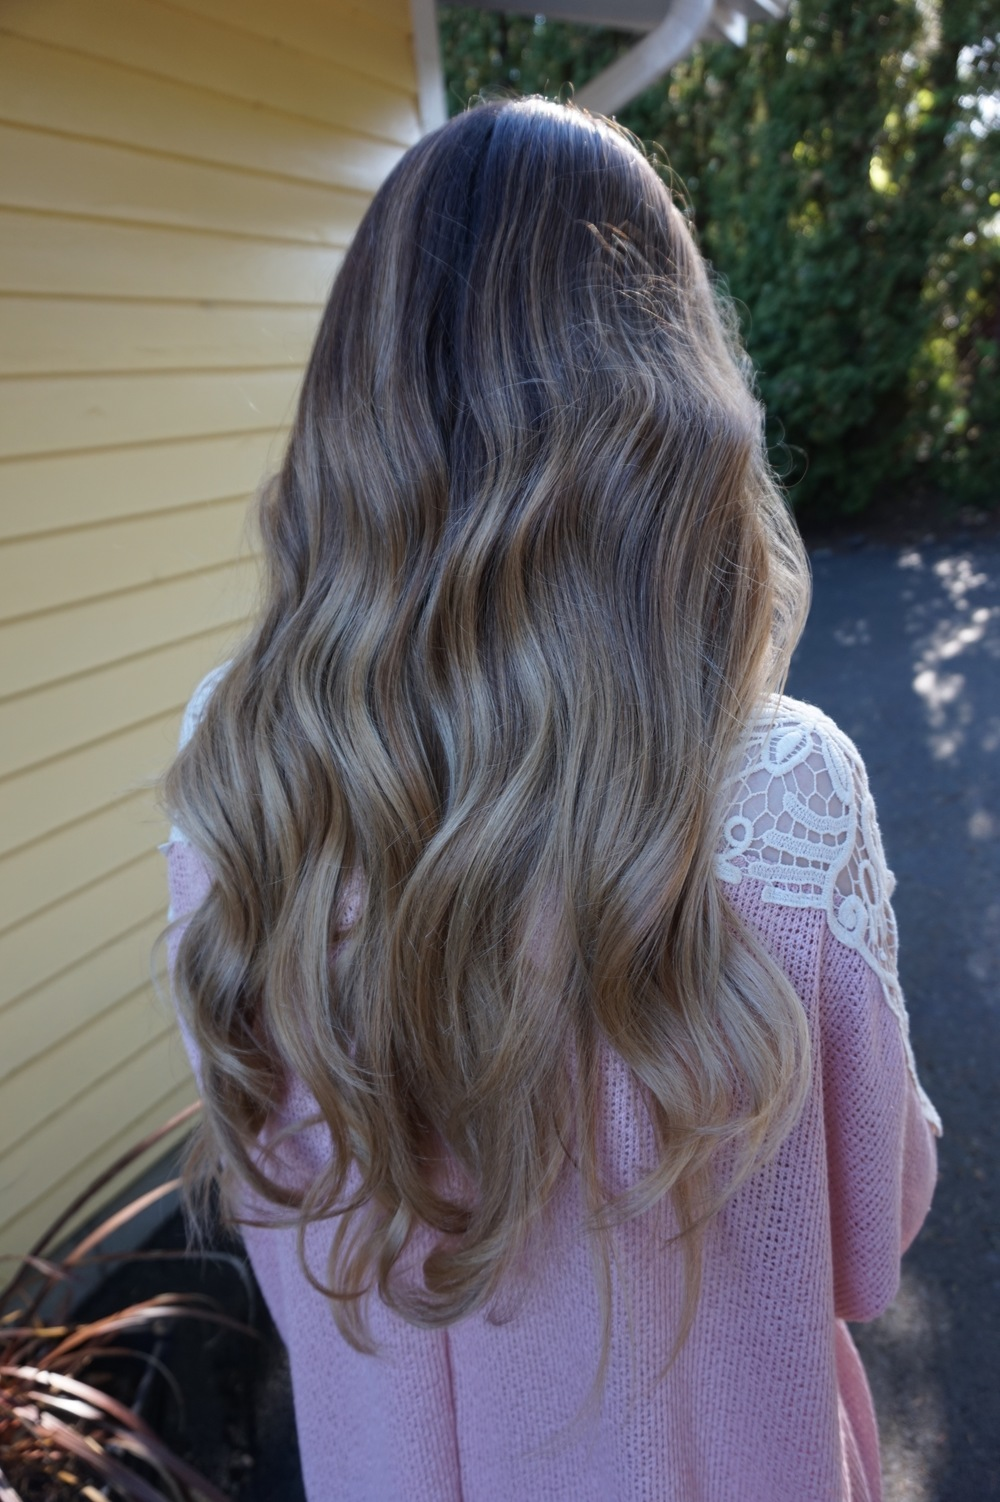 How Can I Lighten My Hair Without Causing Damage The 3 Level Rule